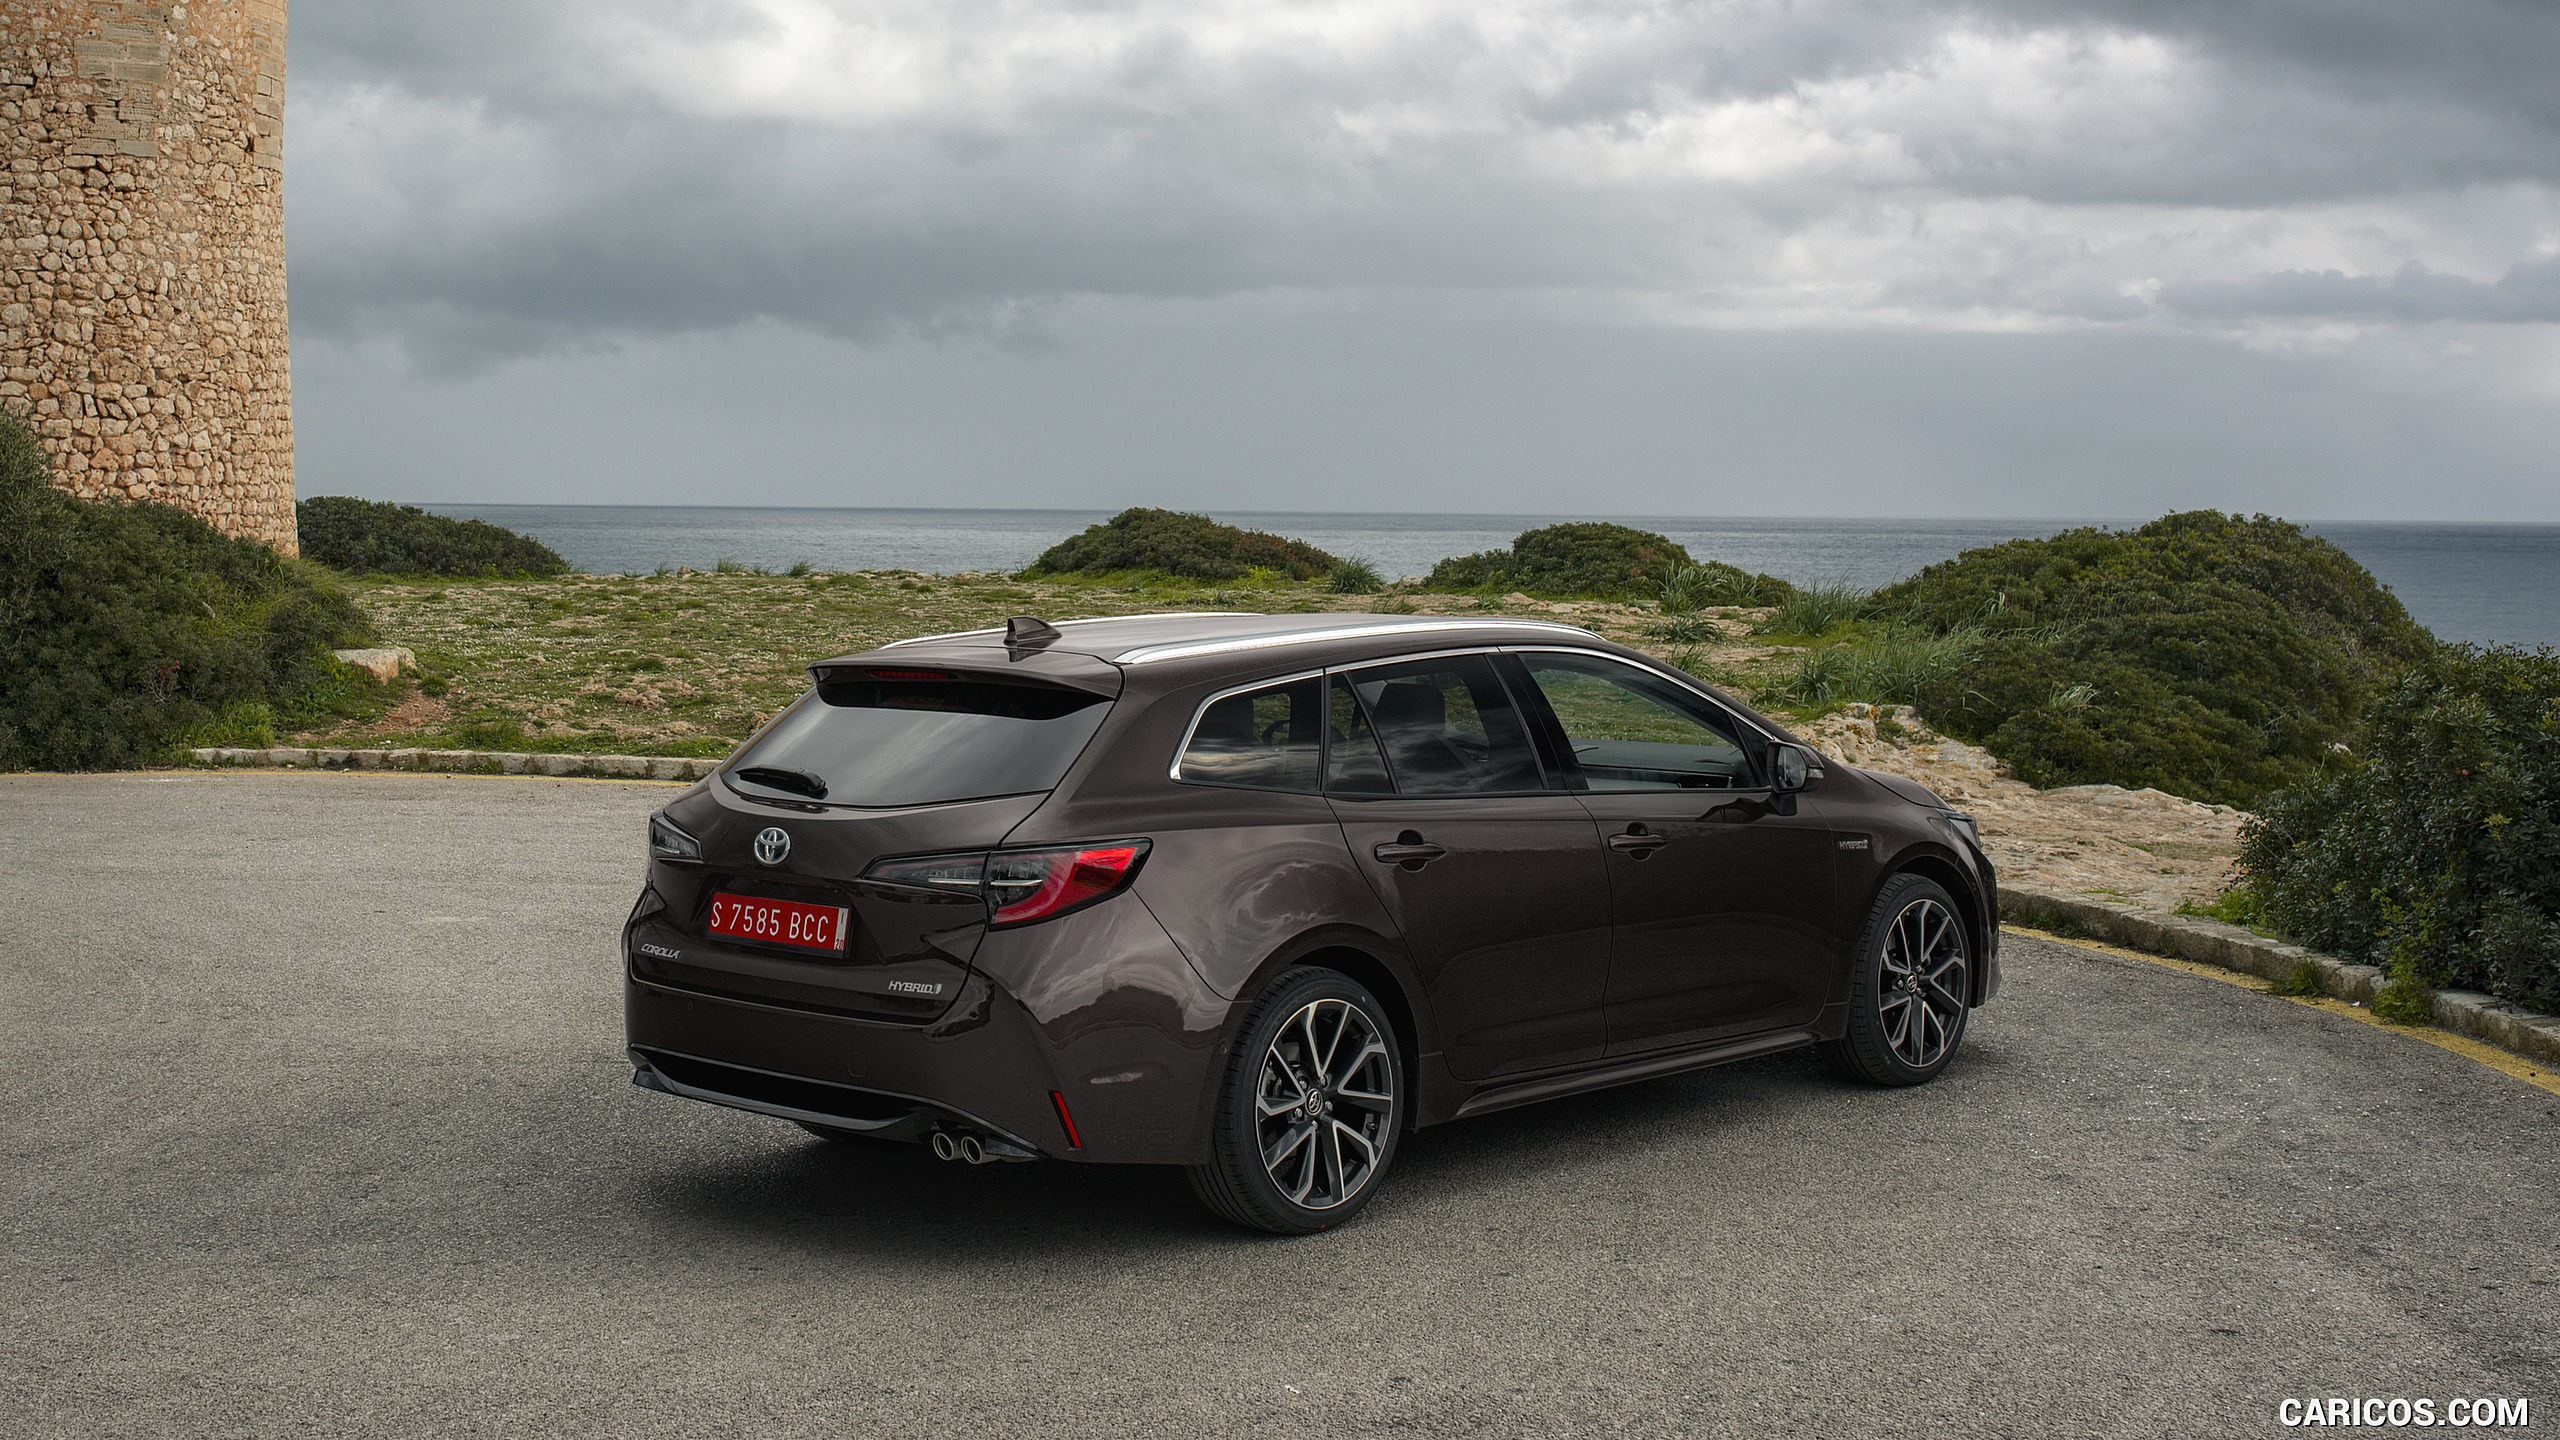 Toyota Corolla Touring Sports Wallpapers